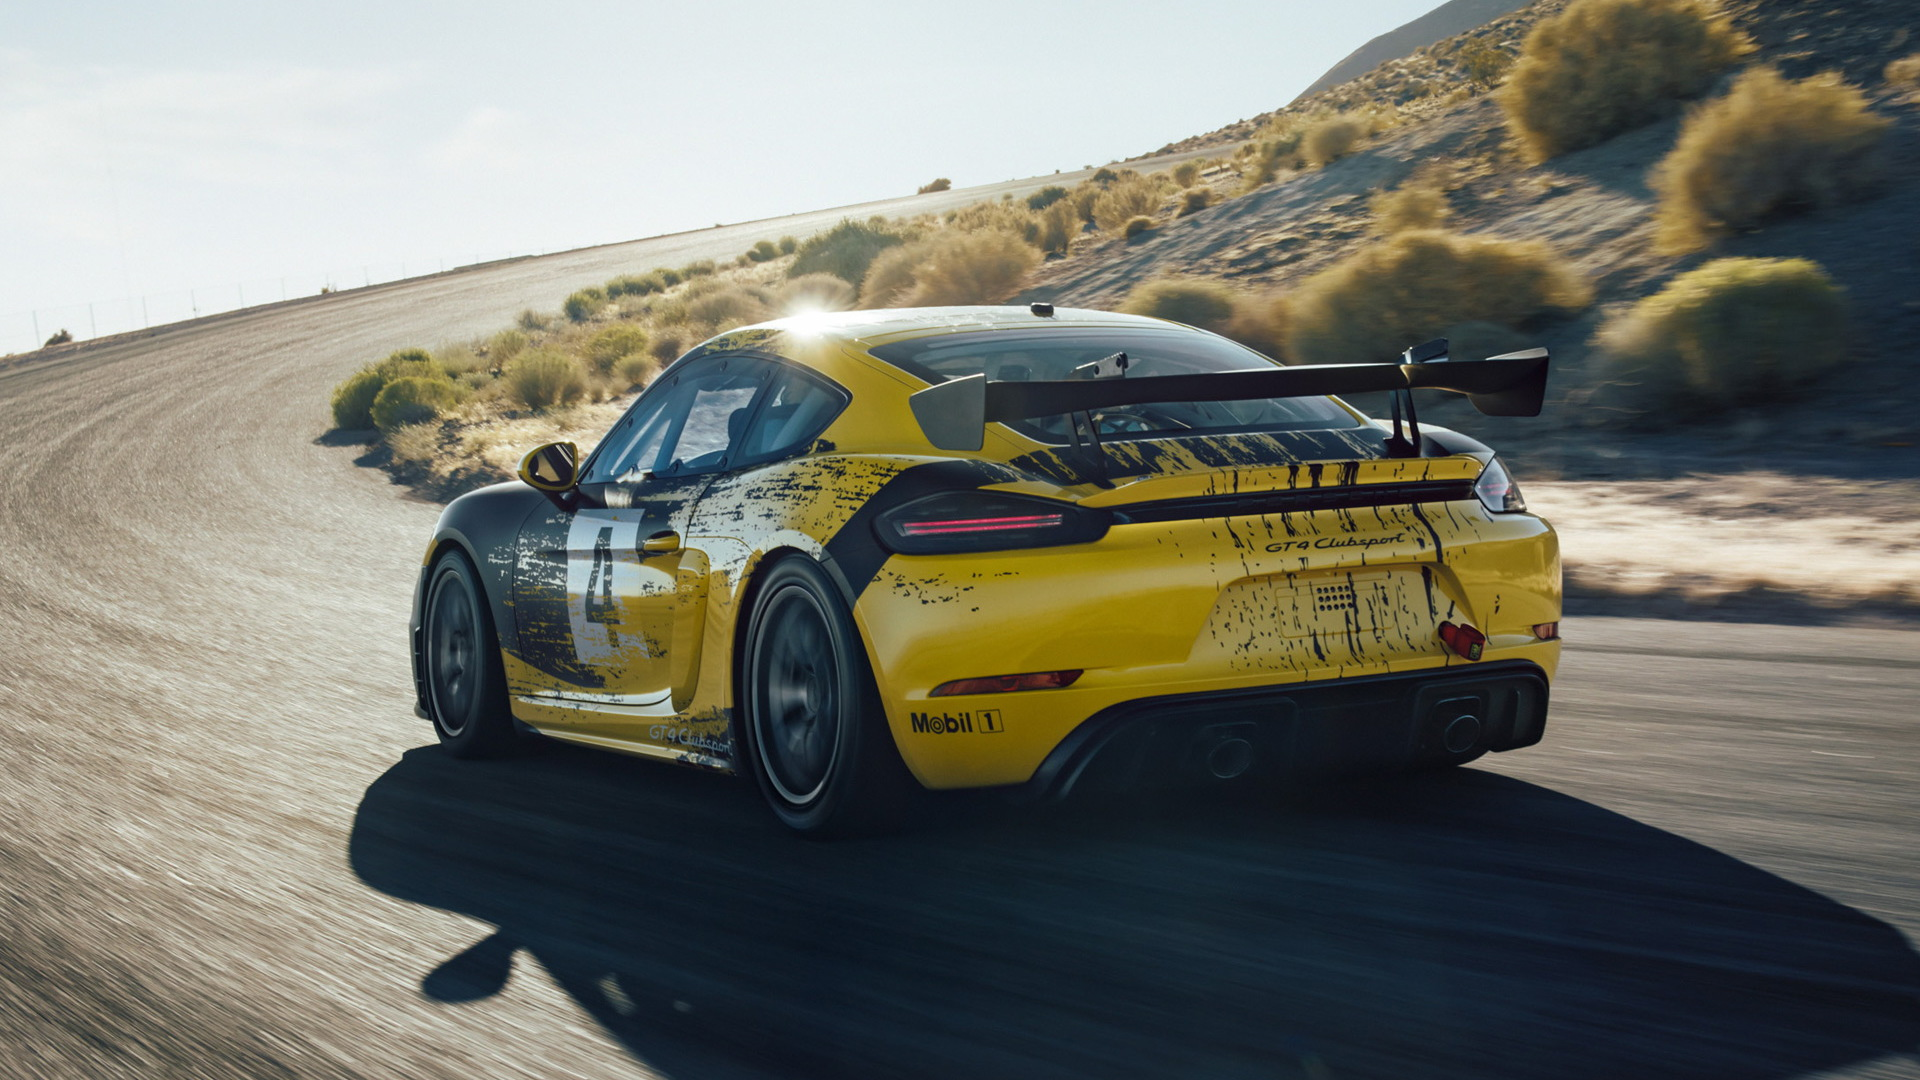 2019 Porsche 718 Cayman GT4 Clubsport race car